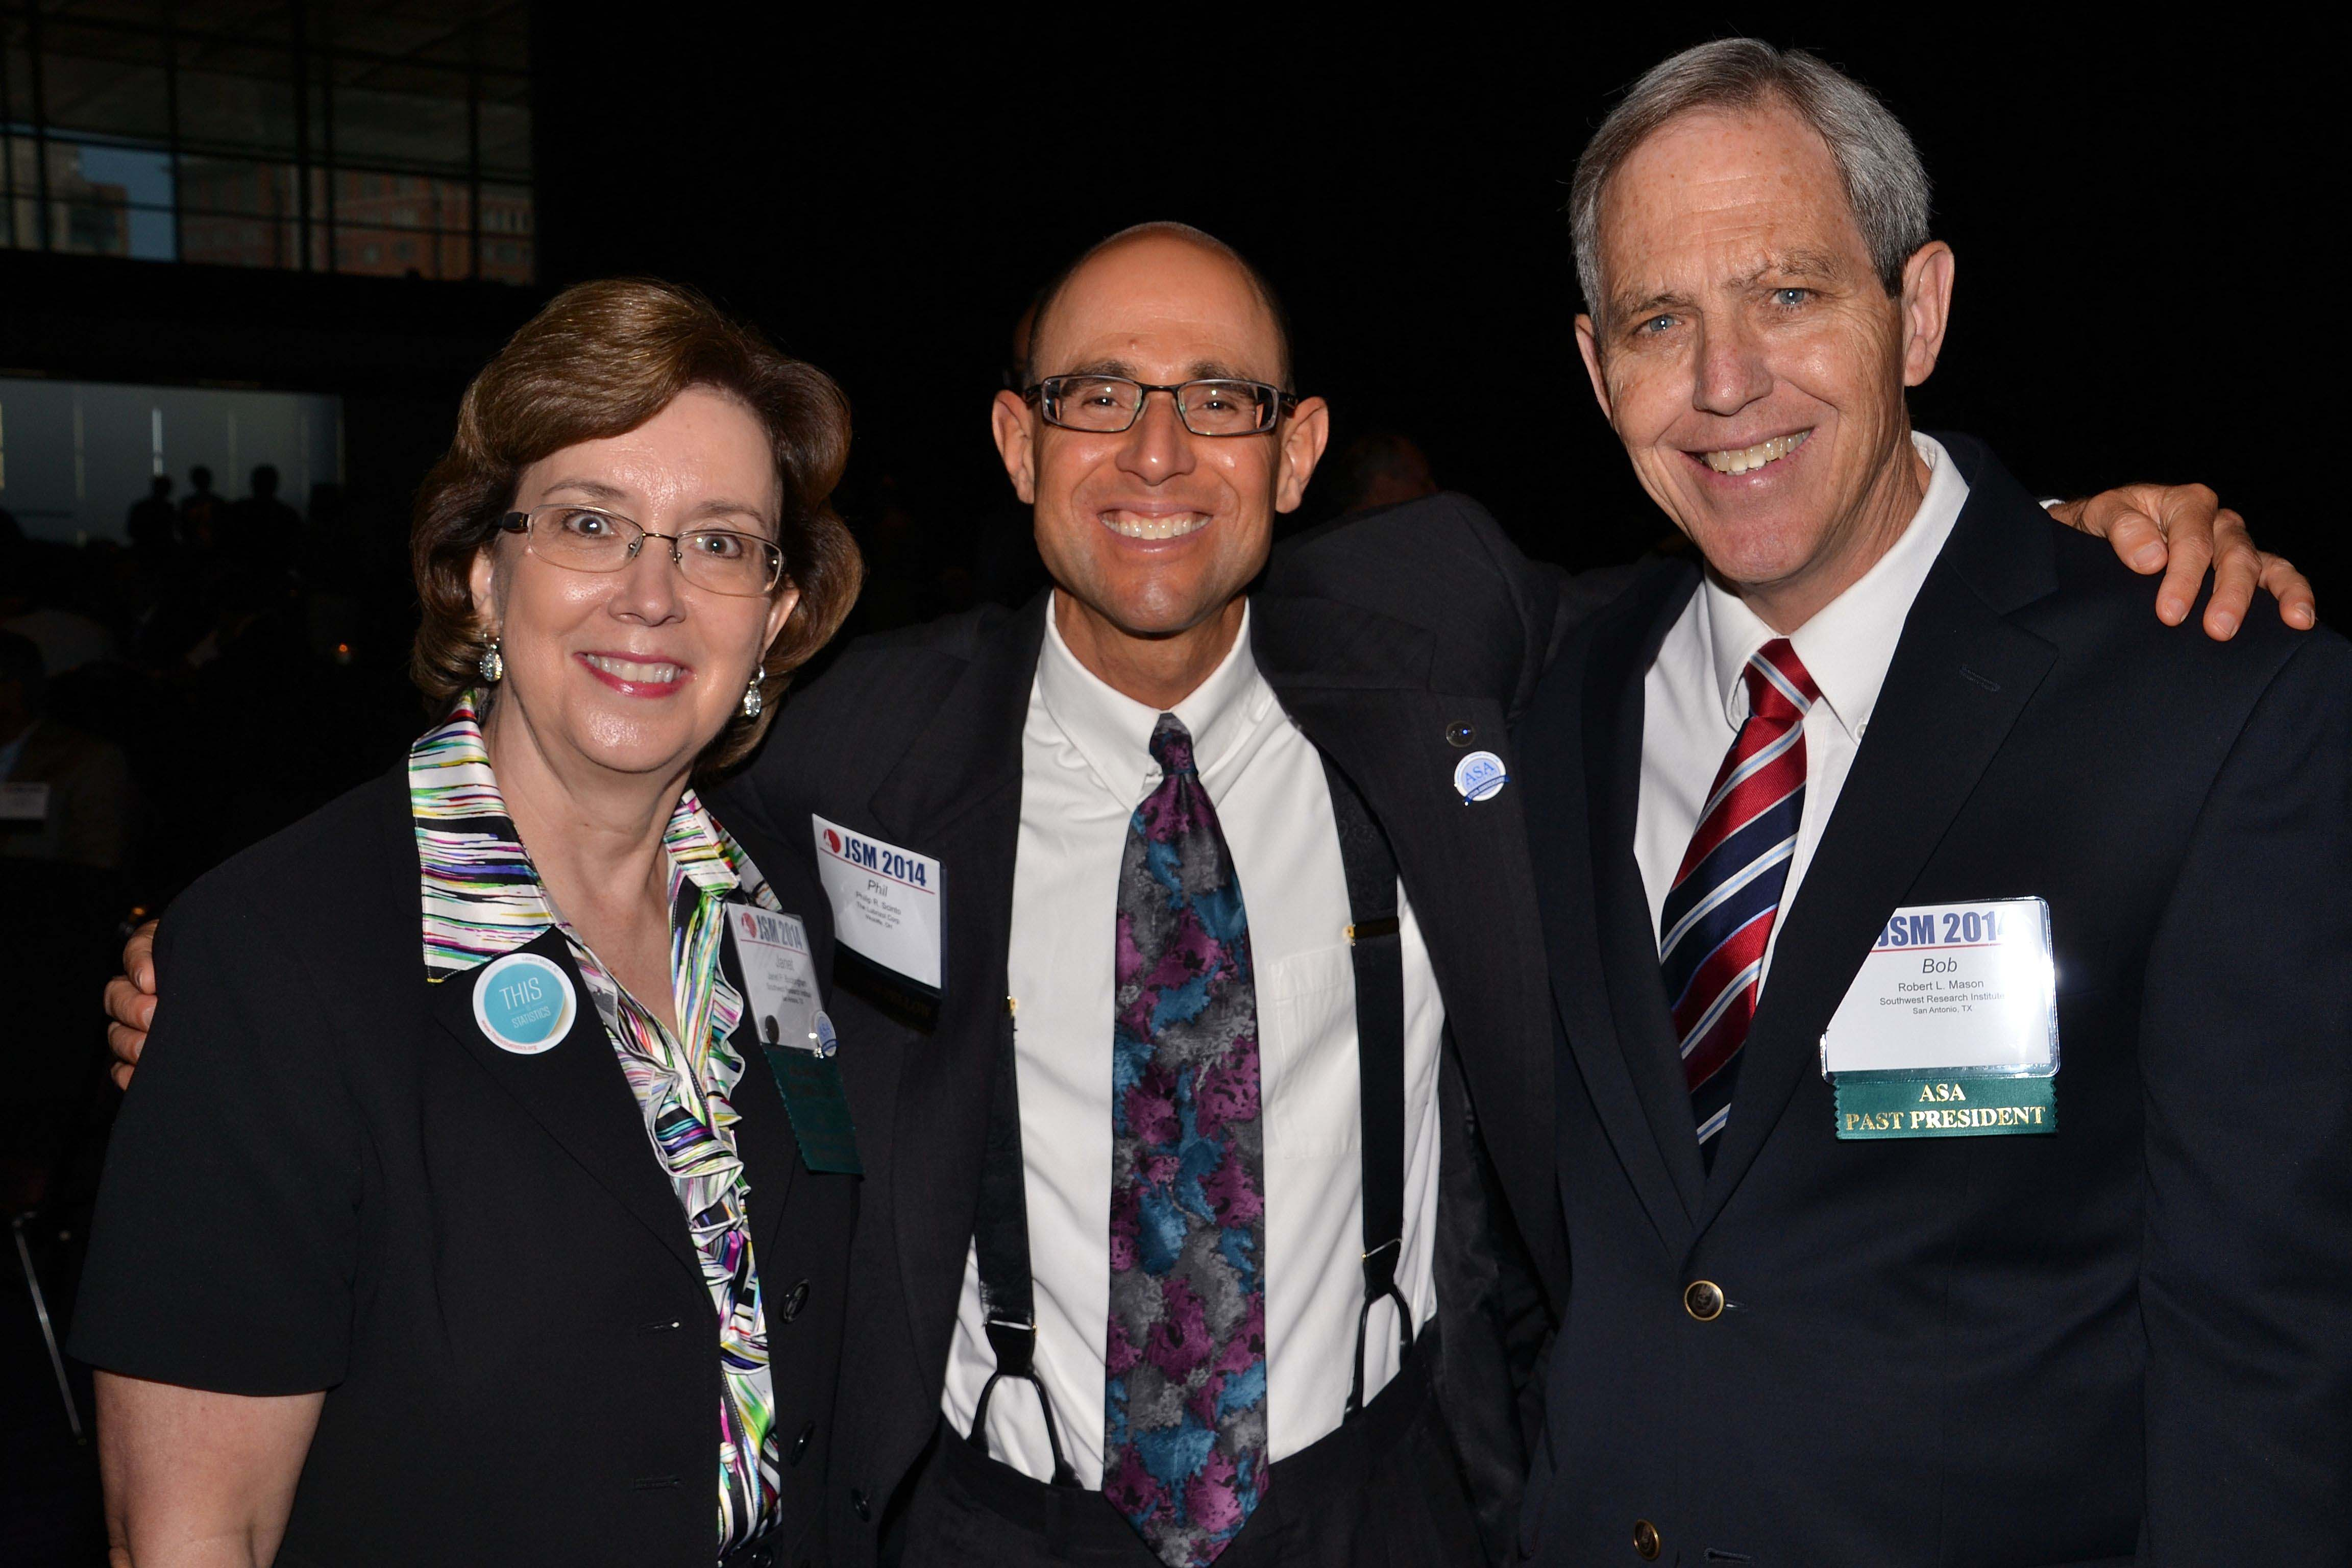 From left: Janet Buckingham, 2014 Fellow Phil Scinto, and Bob Mason